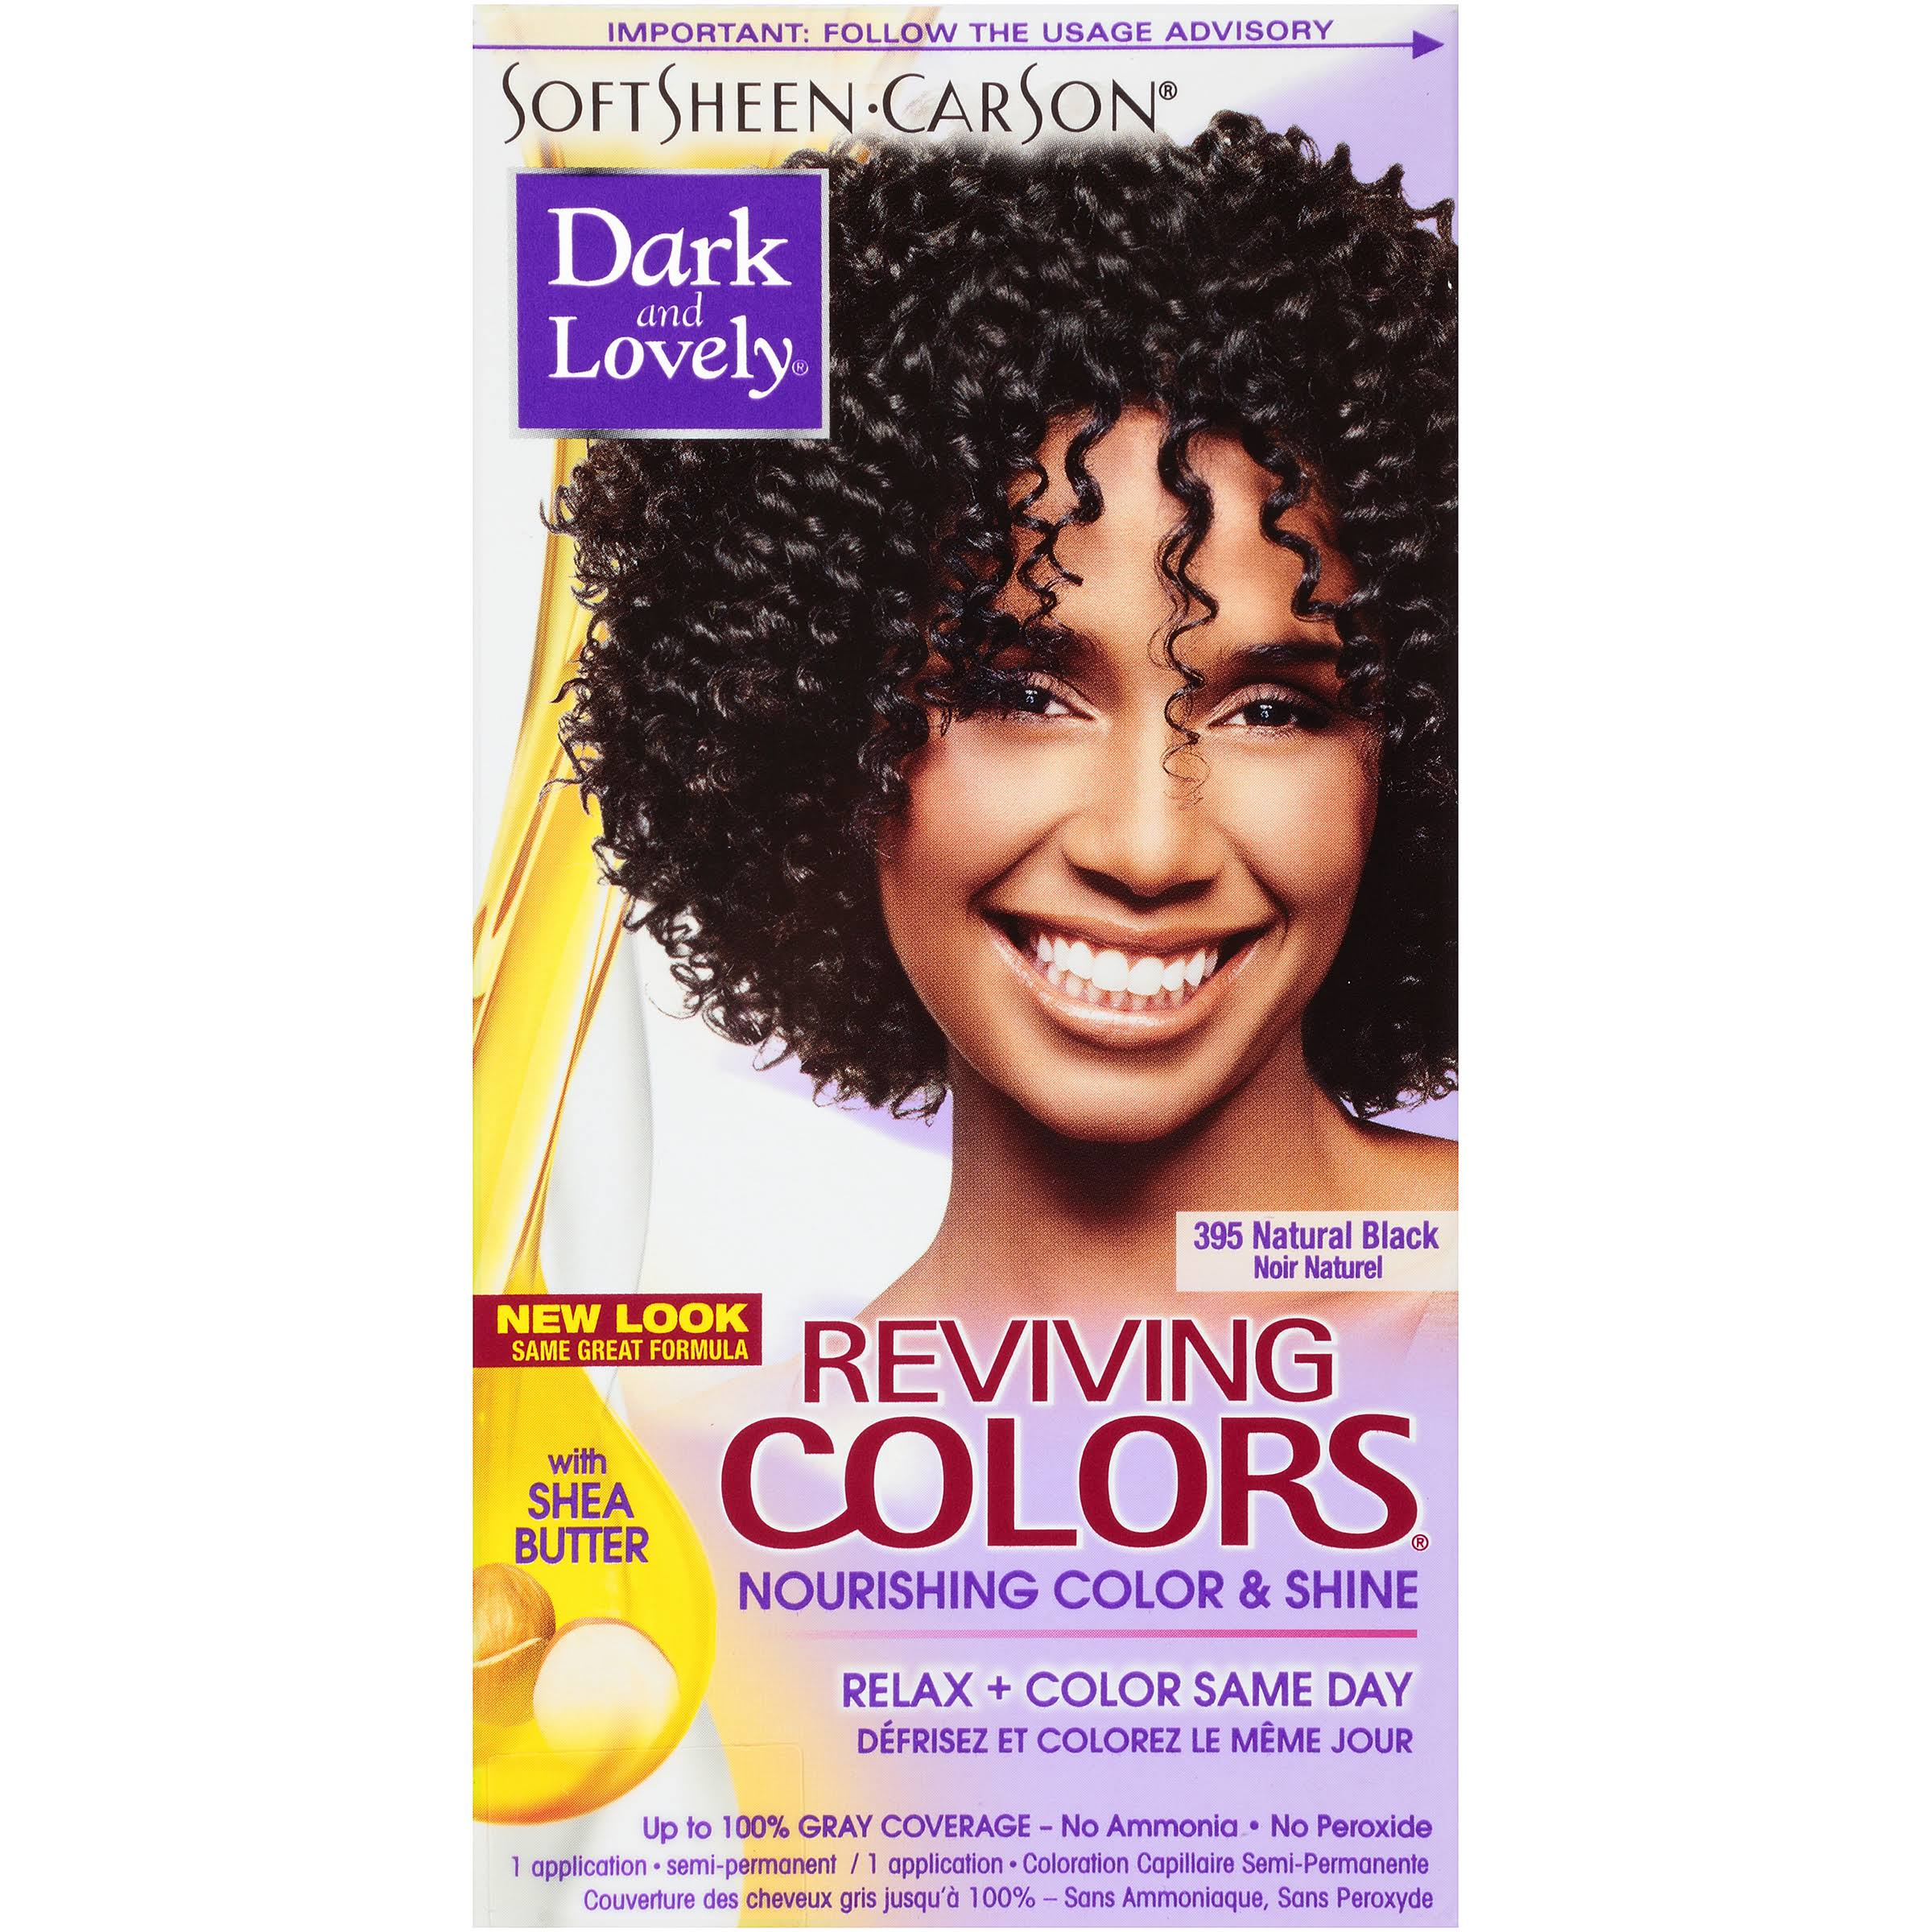 SoftSheen-Carson Dark and Lovely Hair Reviving Colors - Nourishing Color and Shine, Natural Black 395